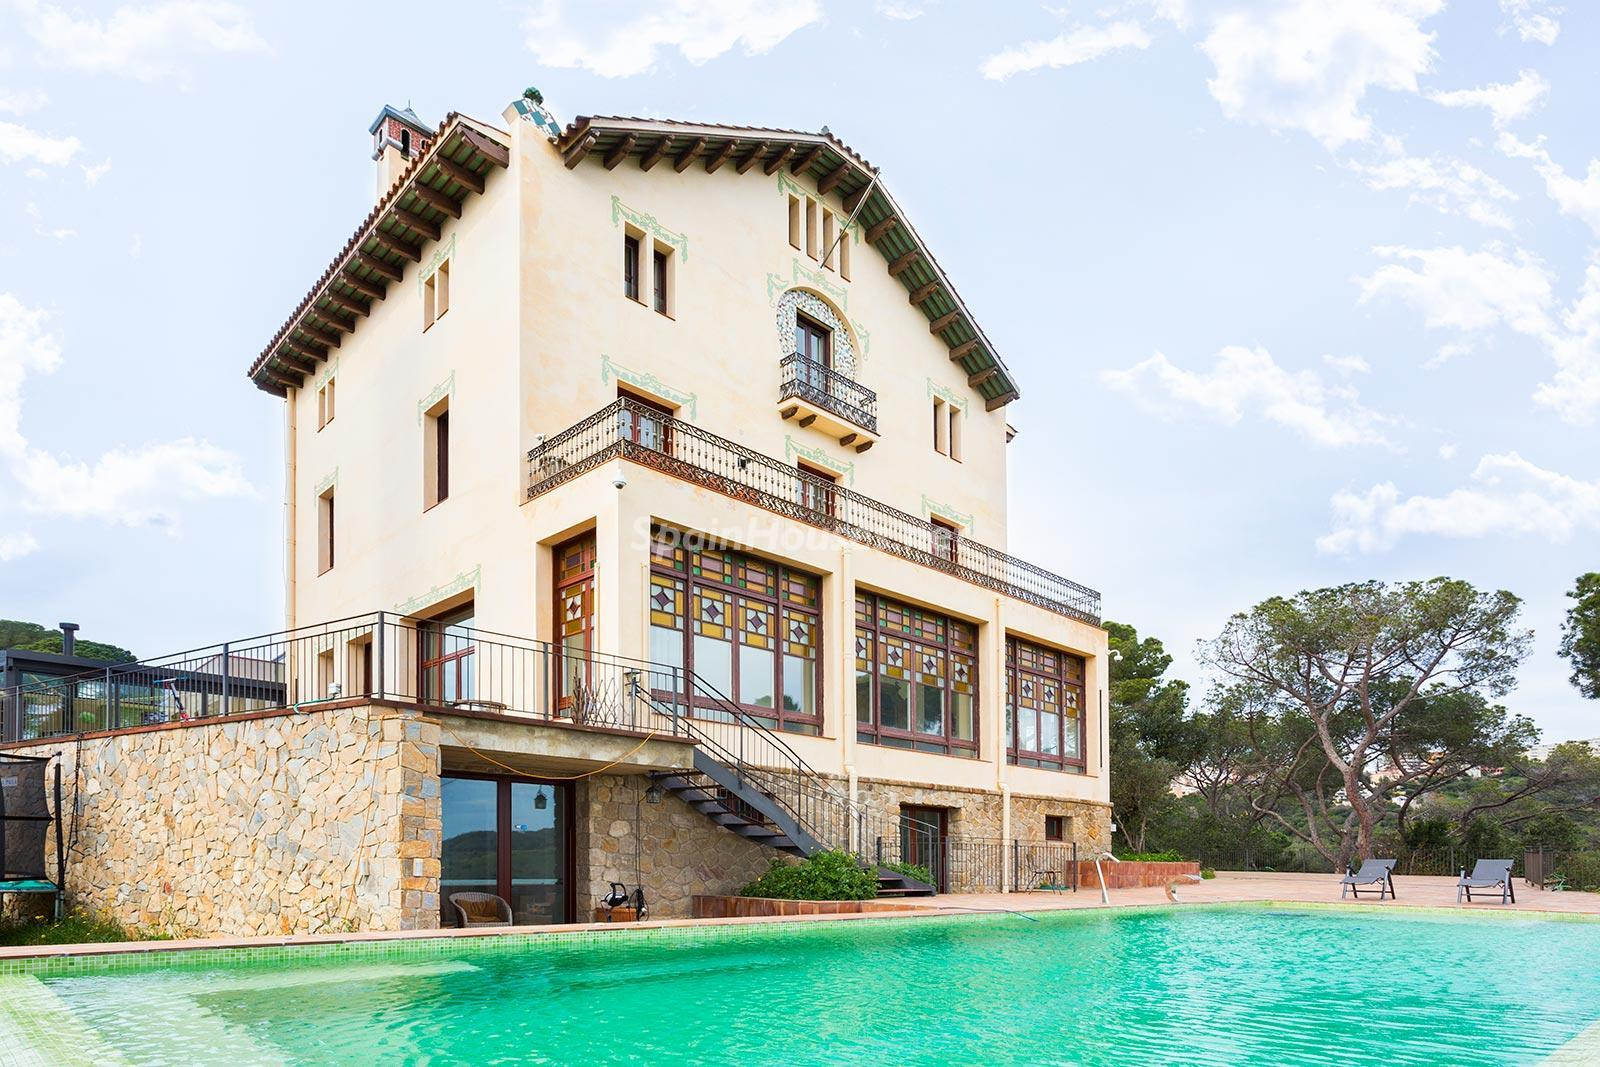 3. House for sale in Sarrià Barcelona - Exclusive 8 Bedroom Villa For Sale in Sarrià, Barcelona